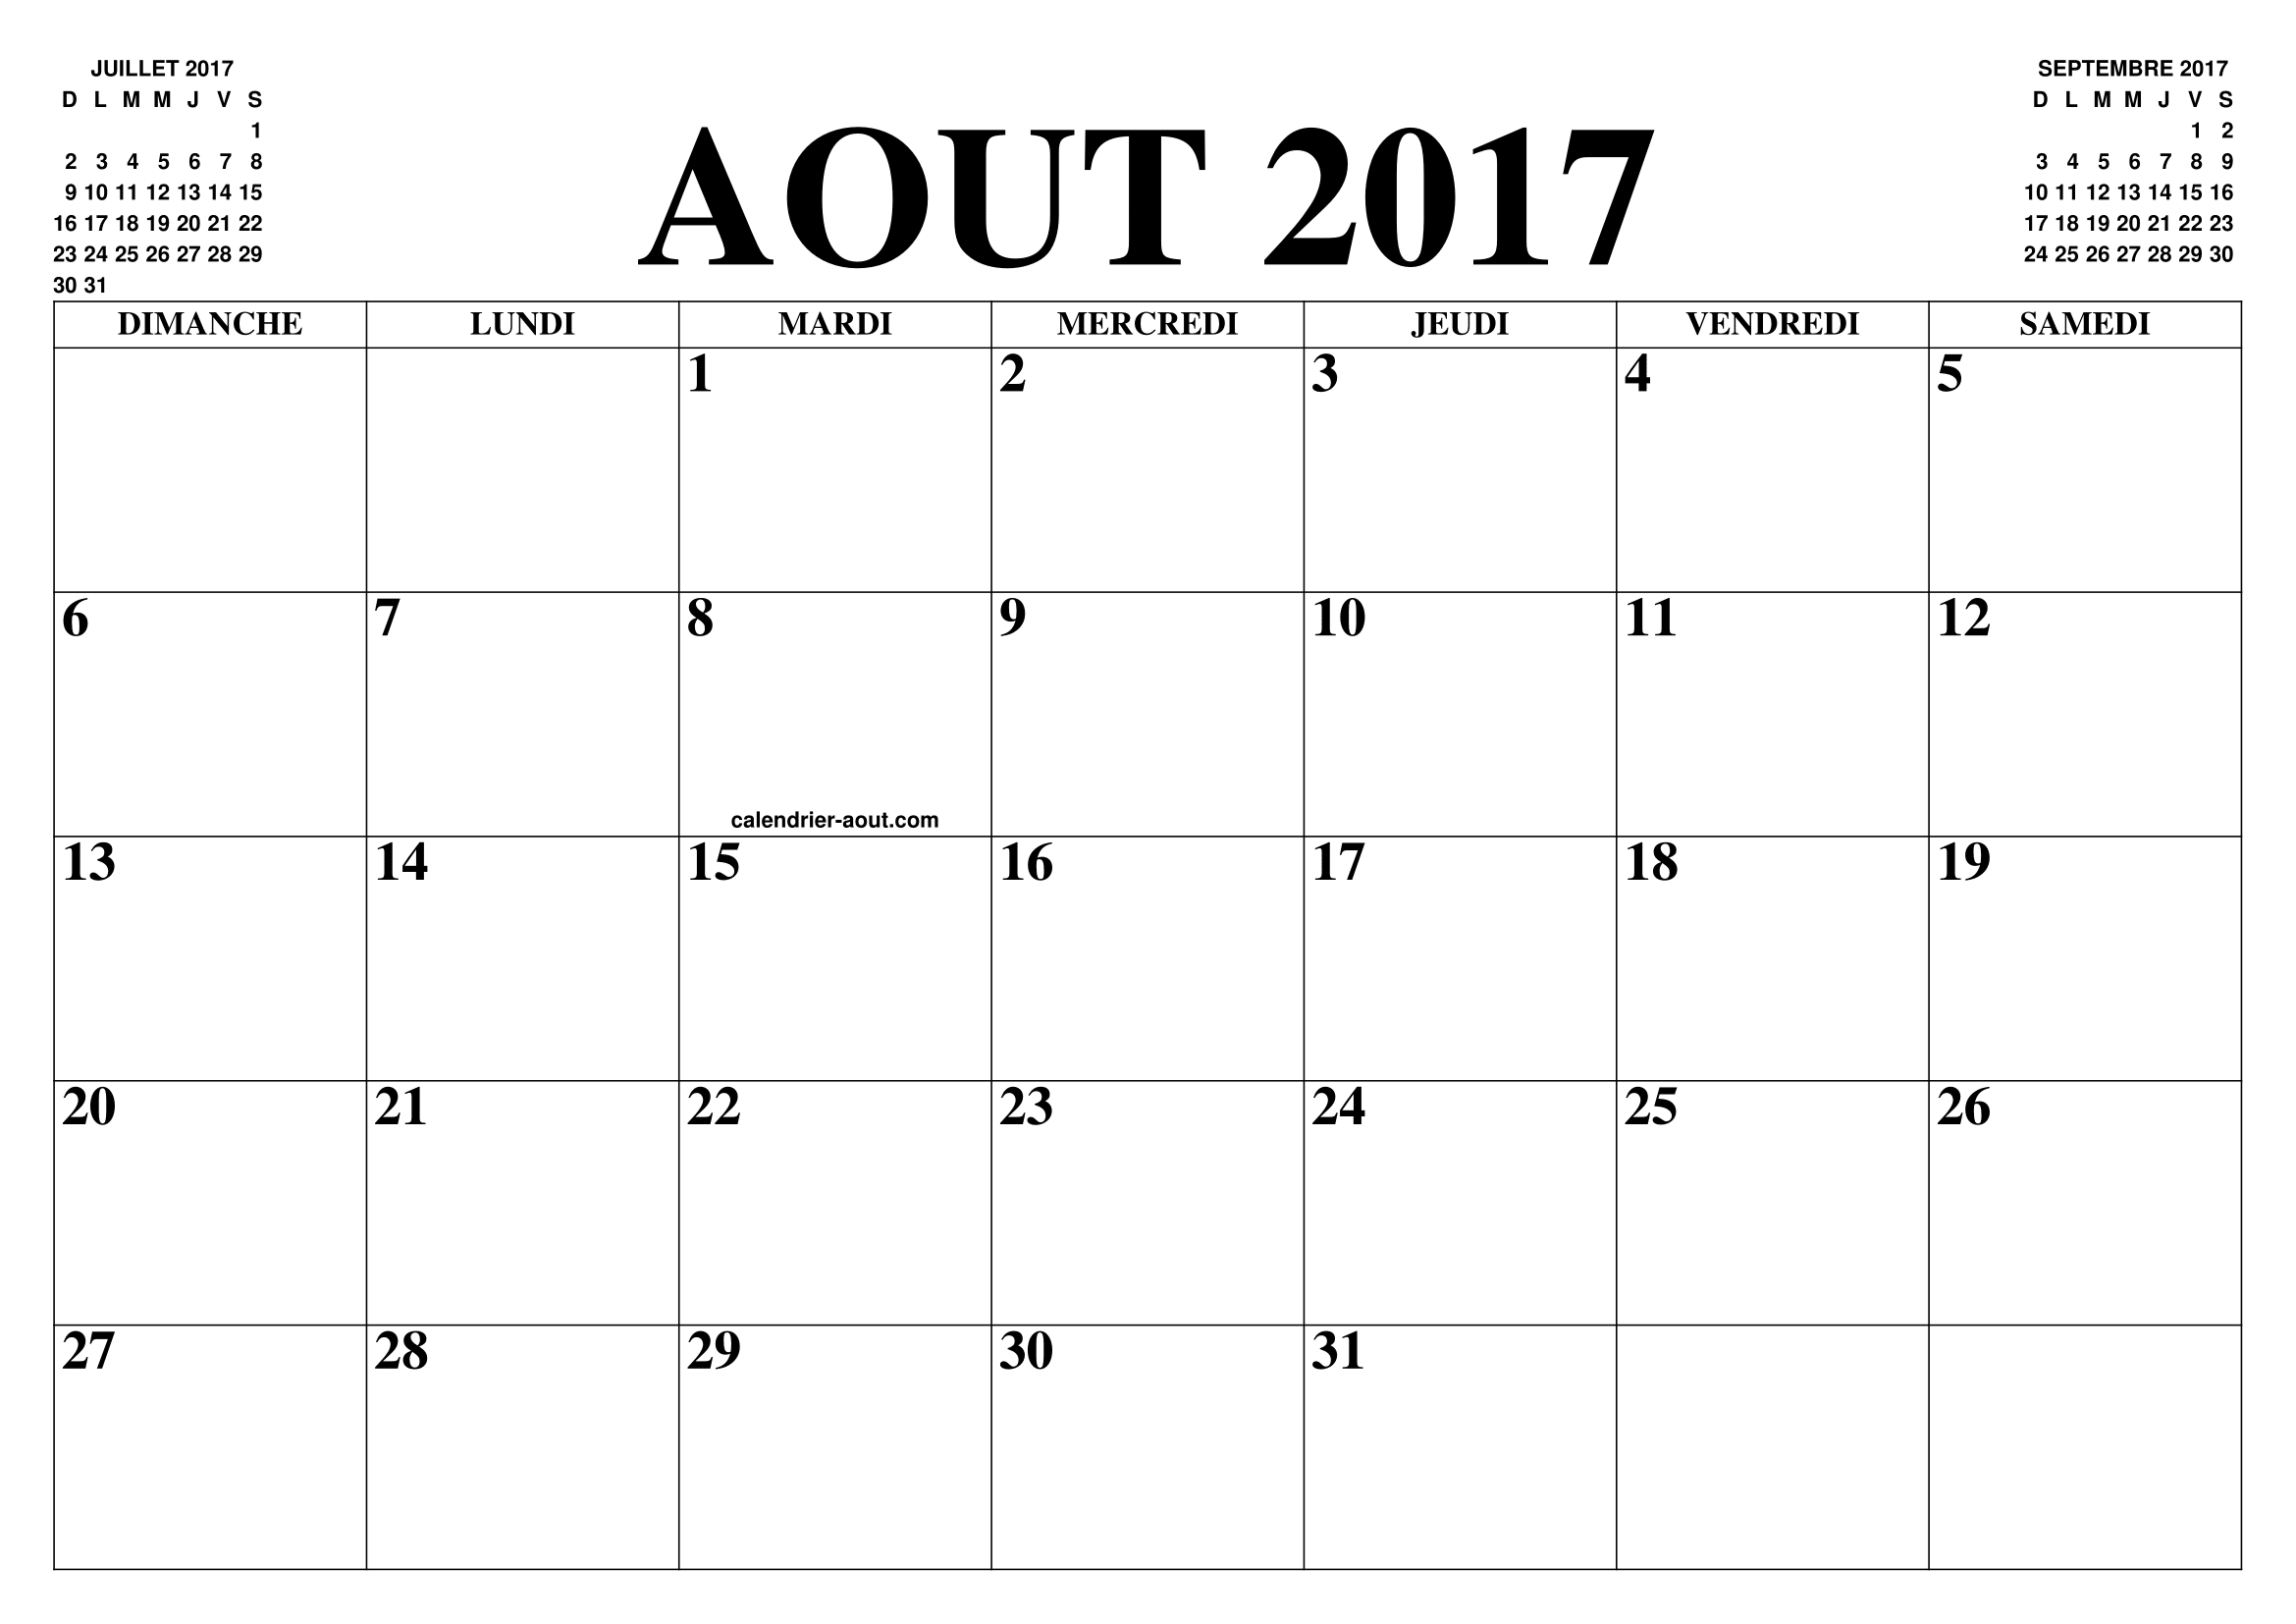 calendrier aout 2017 2018 le calendrier du mois de aout 2017 2018 gratuit a imprimer agenda. Black Bedroom Furniture Sets. Home Design Ideas